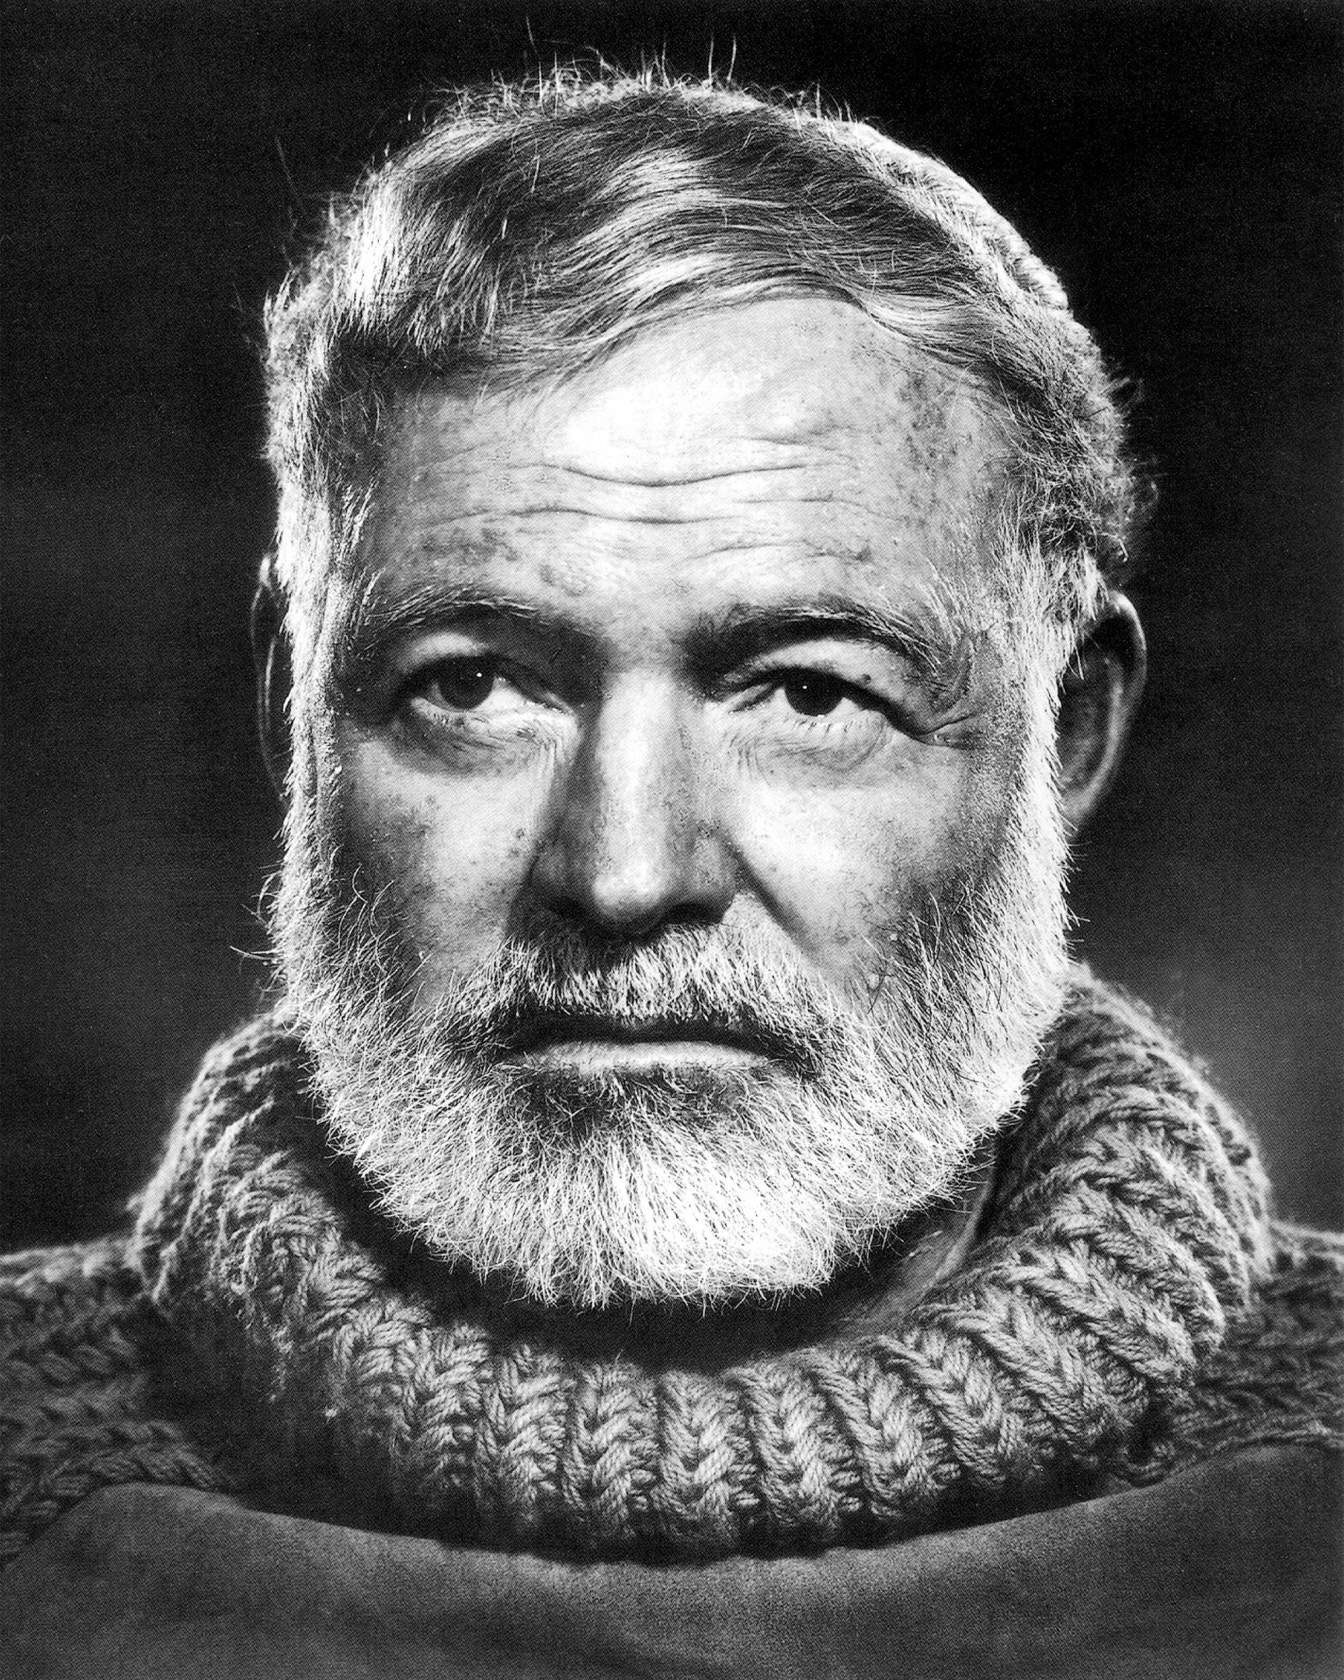 author bio ernest hemingway Ernest hemingway (b on july 21st, 1889 in oak park, illinois-d july 2nd, 1961) was the highly influential american author of such classic novels as the sun also hemingway was well known for his sparse writing style, a departure from the florid writing styles of his contemporaries, and his literary.